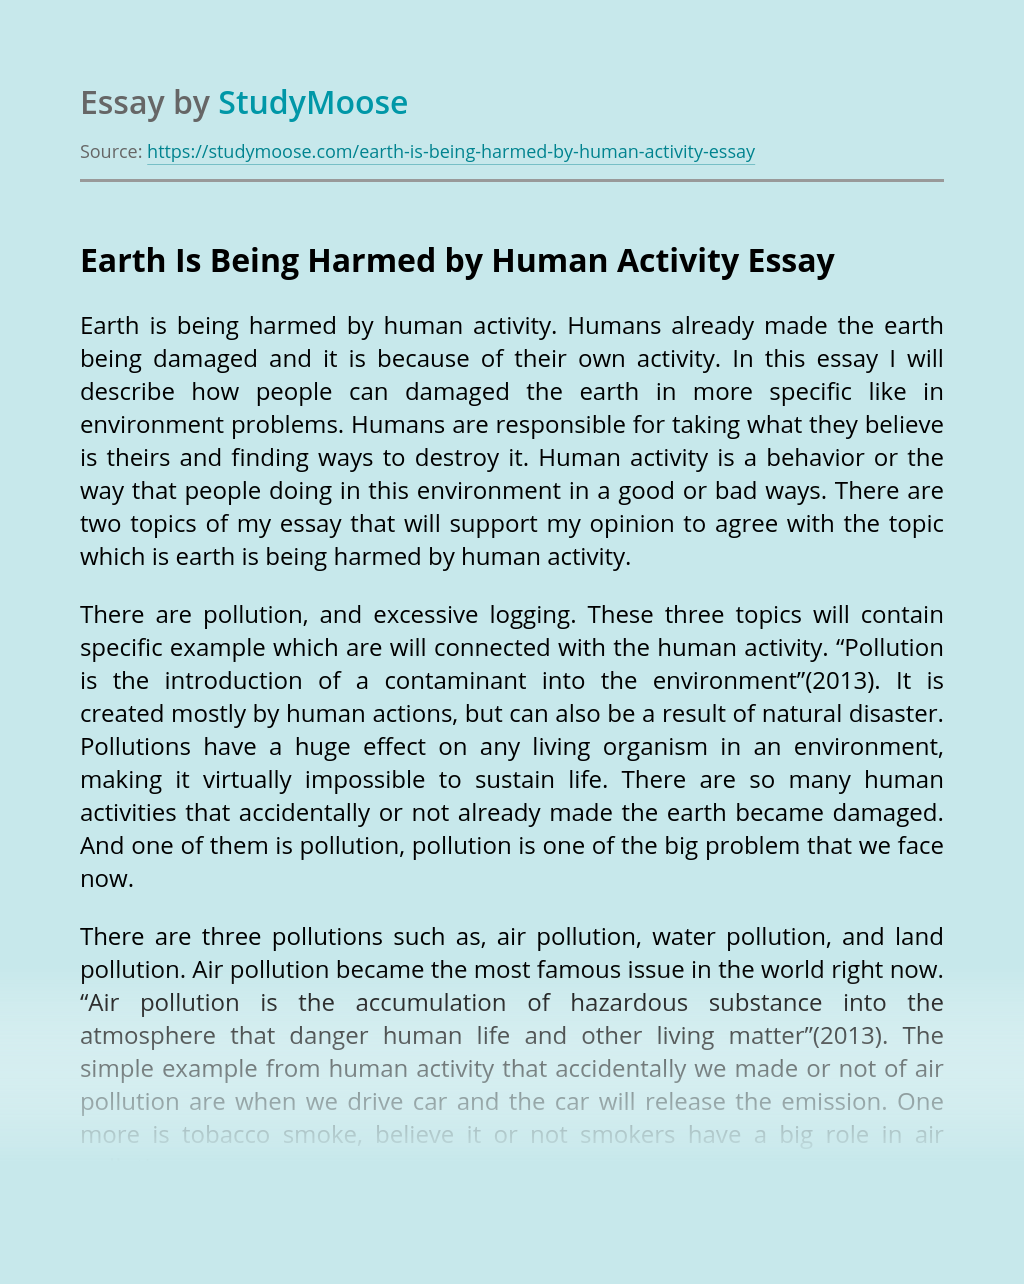 Earth Is Being Harmed by Human Activity